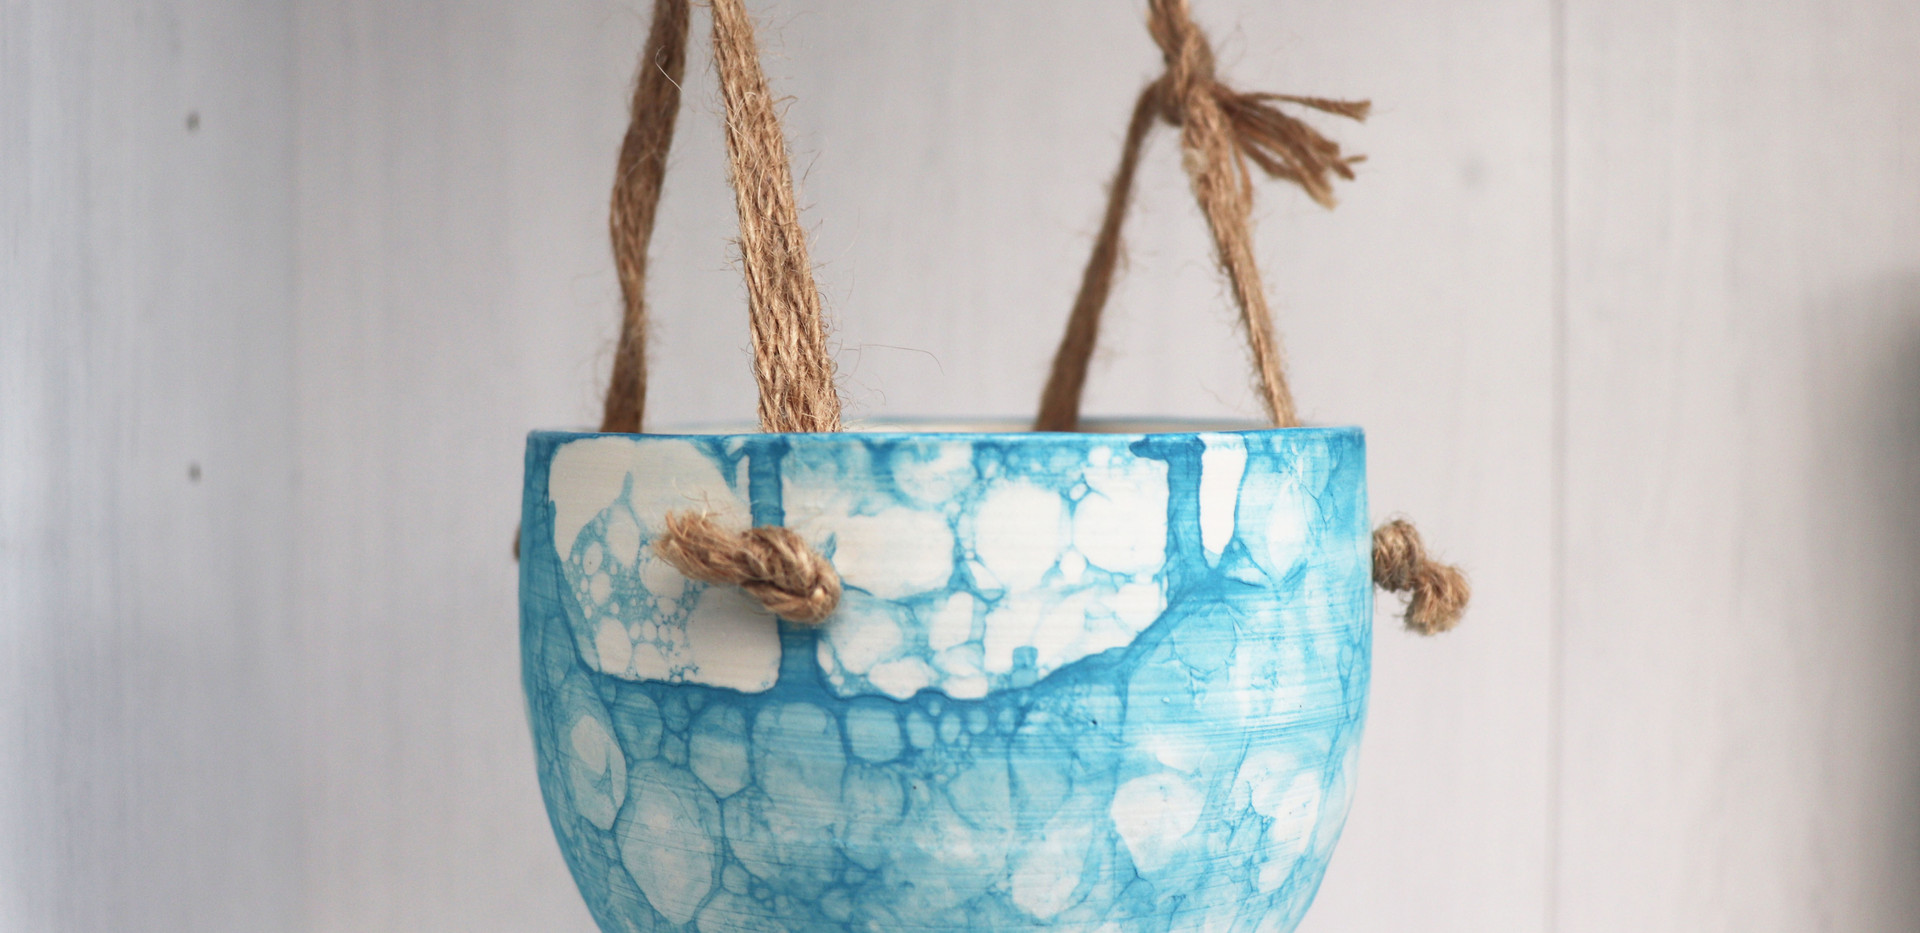 Hanging Planter in Sky Blue